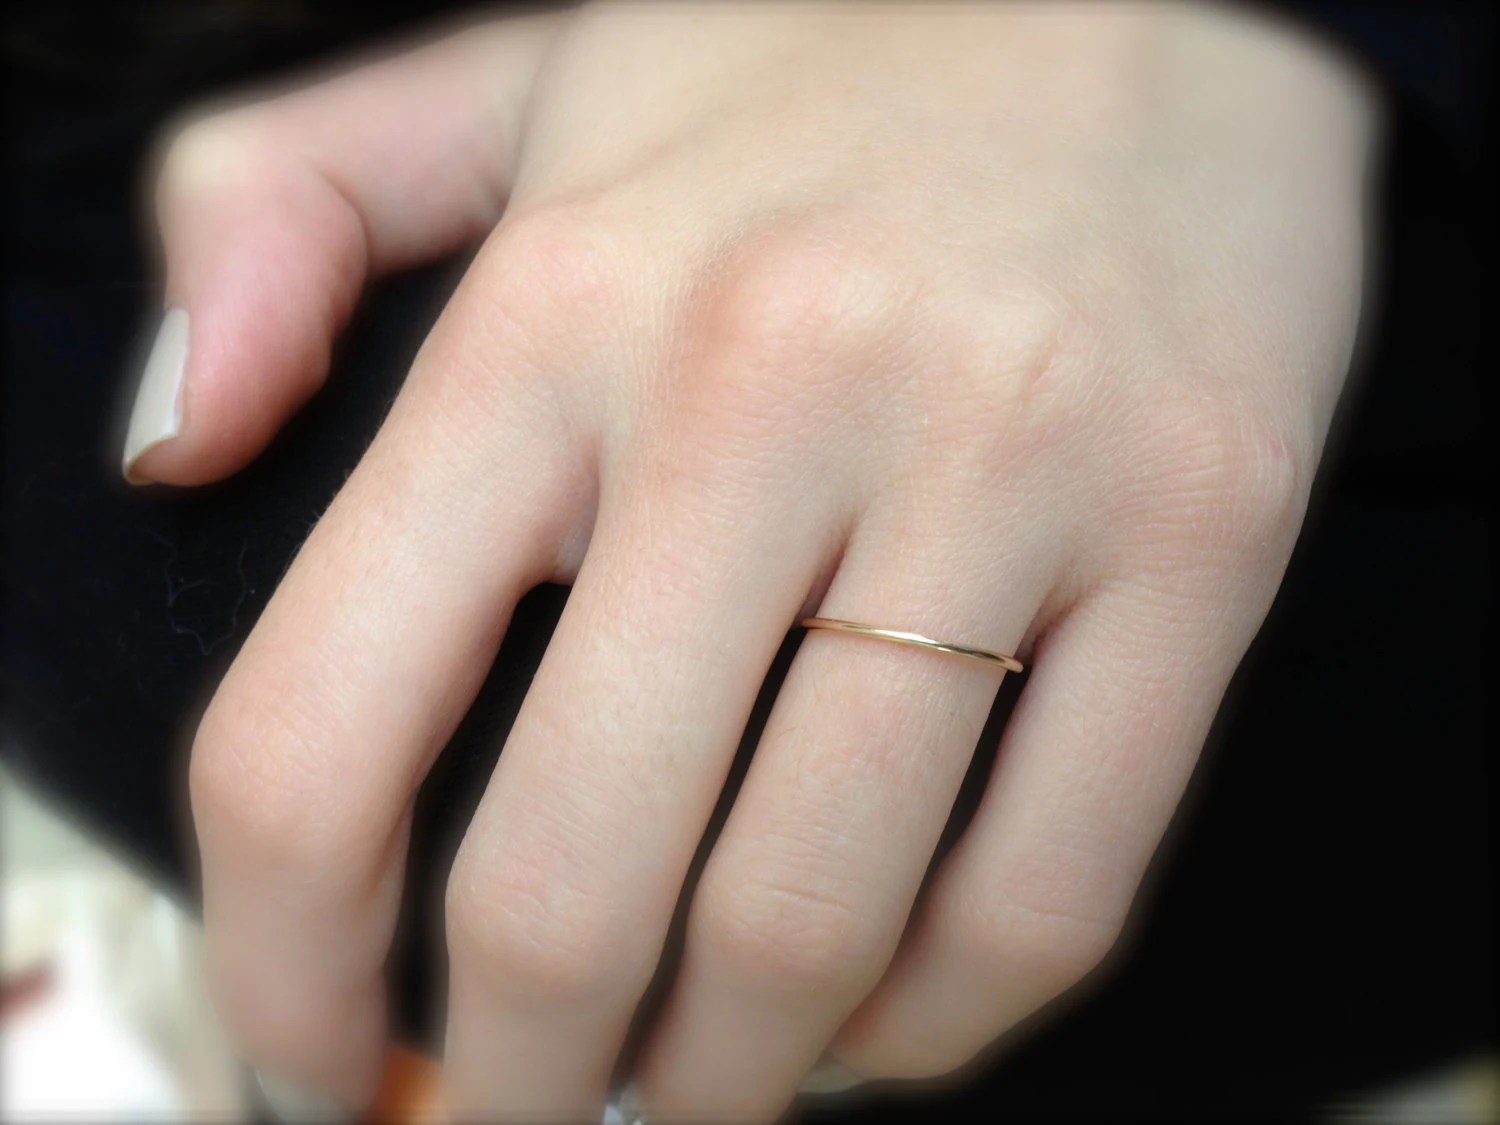 very thin rose gold band thin wedding wedding ring spacer Very Thin Gold Wedding Band solid 14k YELLOW Gold Handmade 1mm Fully Round full halo Plain Simple Skinny Dainty Stacking Band Spacer Ring